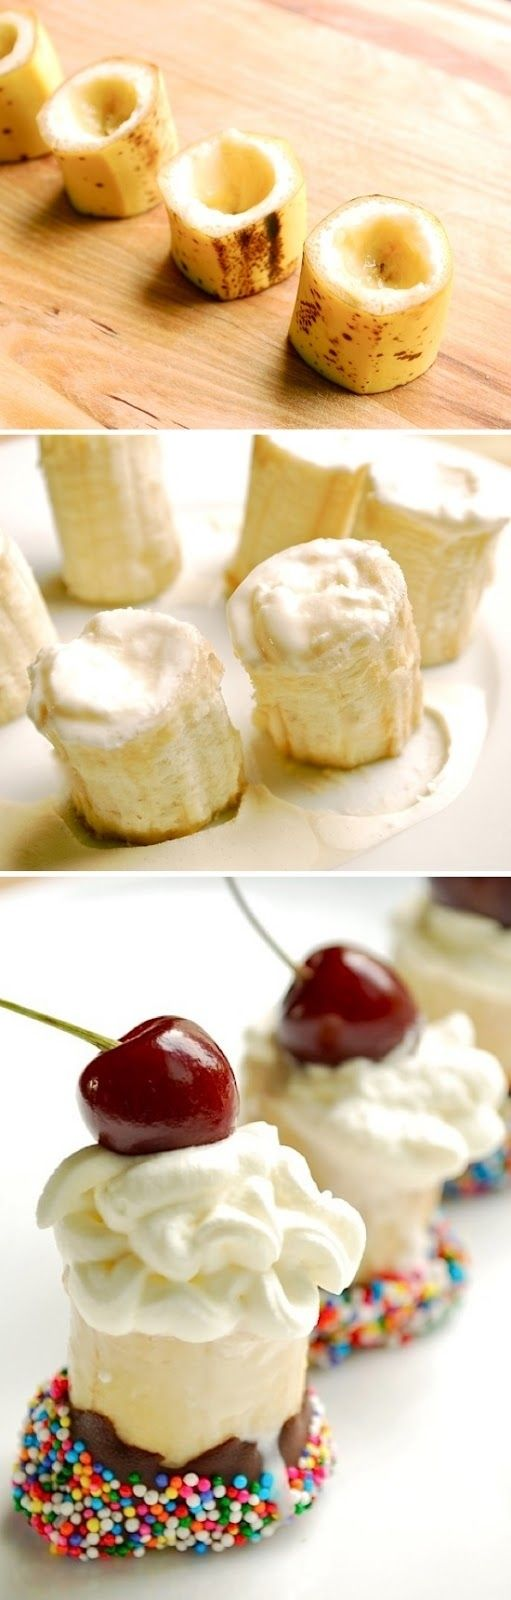 Banana Split Bites | 19 Perfect Summer Desserts That Will Make You Drool